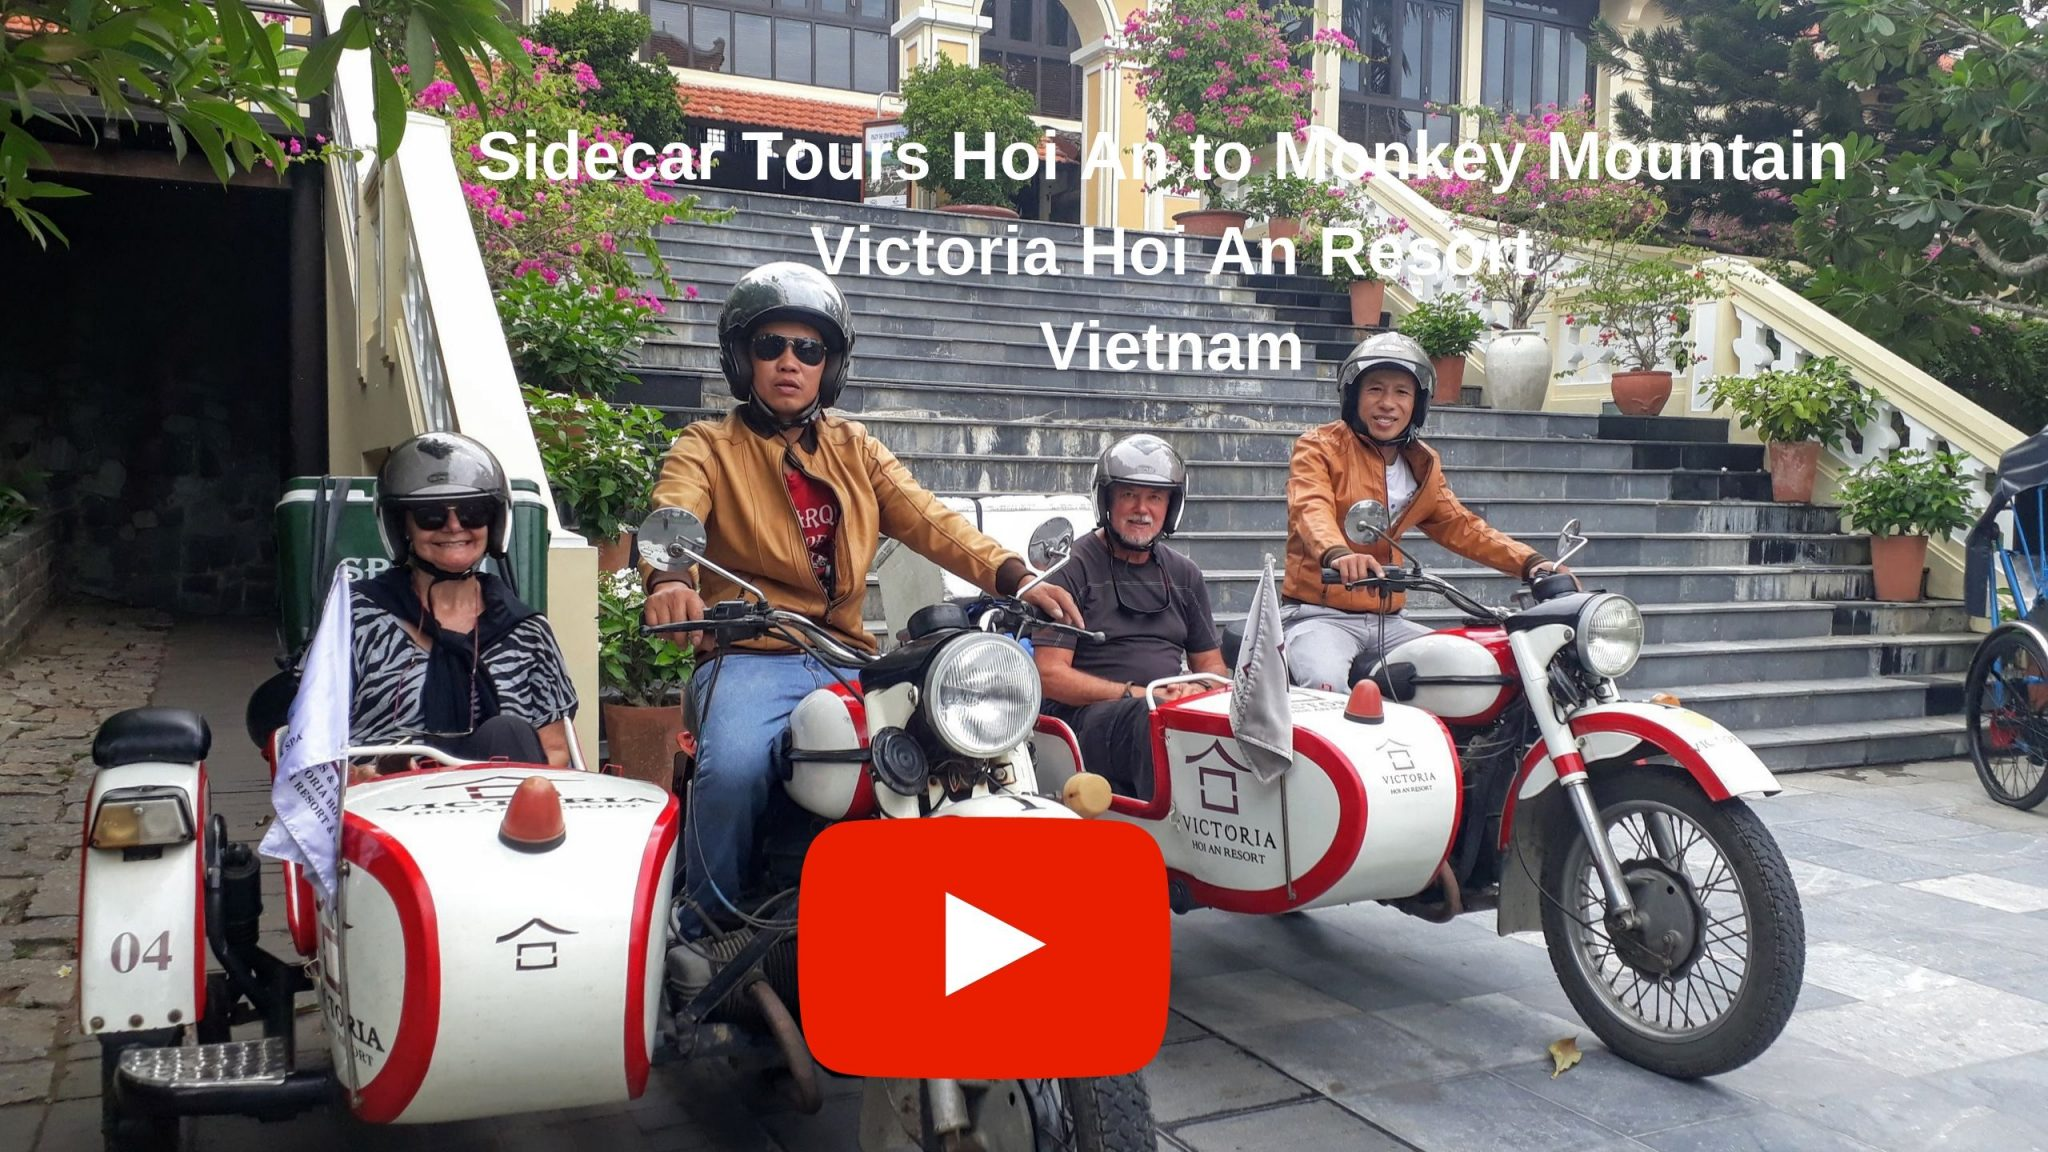 YouTube SideCar Tours Hoi An to Monkey Mountain Vietnam